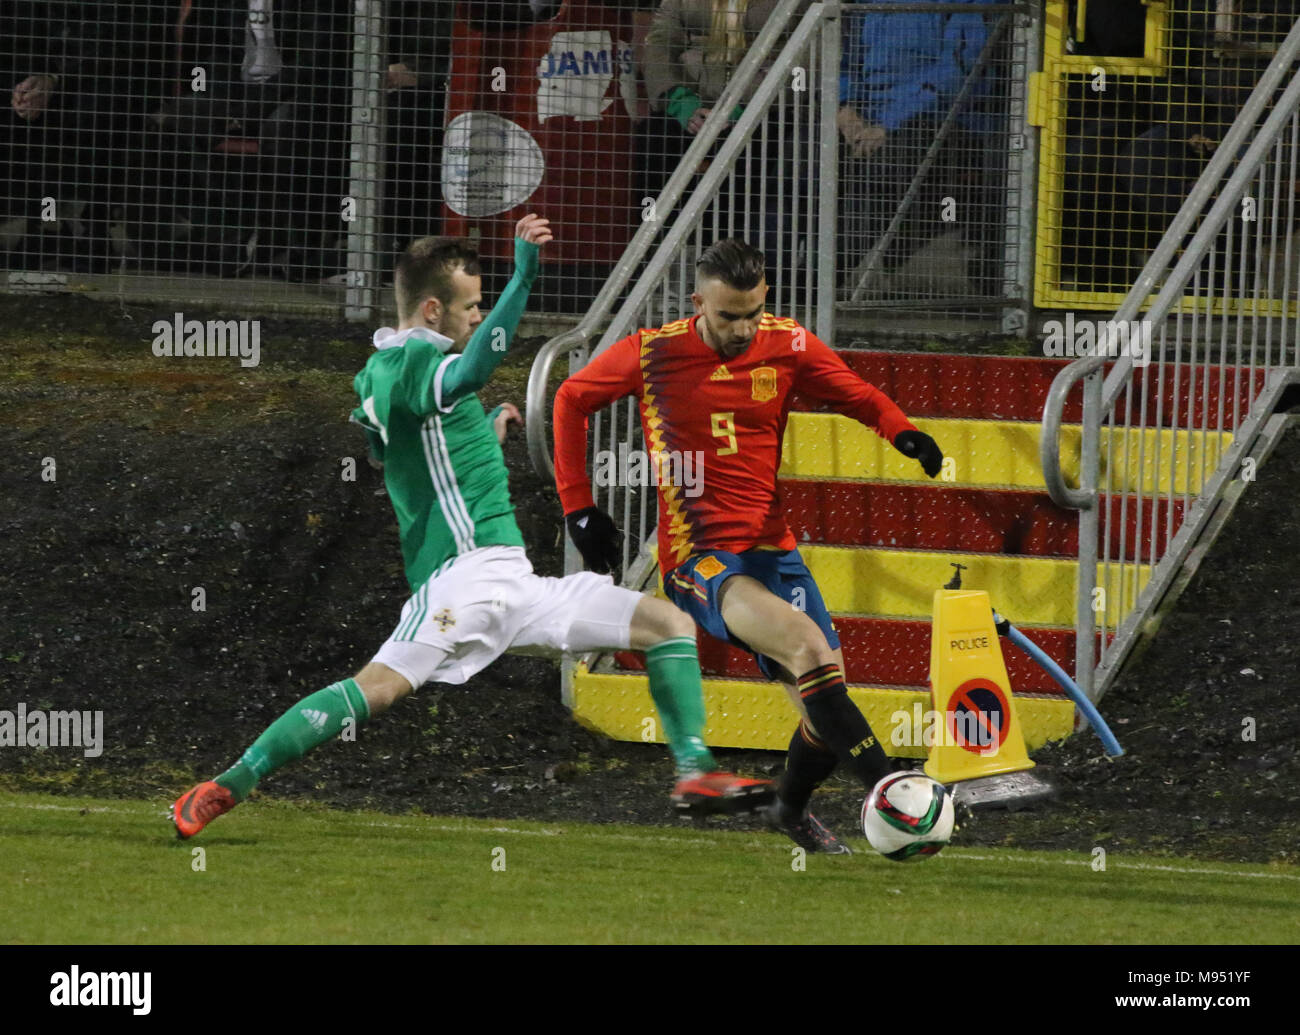 Shamrock Park, Portadown, Northern Ireland UK. 22 March 2018. International football - 2019 UEFA Under 21 Championship Qualifier - Group 2 - Northern Ireland v Spain. Spain's Borja Mayoral (9) and Northern Ireland's Cameron Dummigan (2). Credit: David Hunter/Alamy Live News. - Stock Image